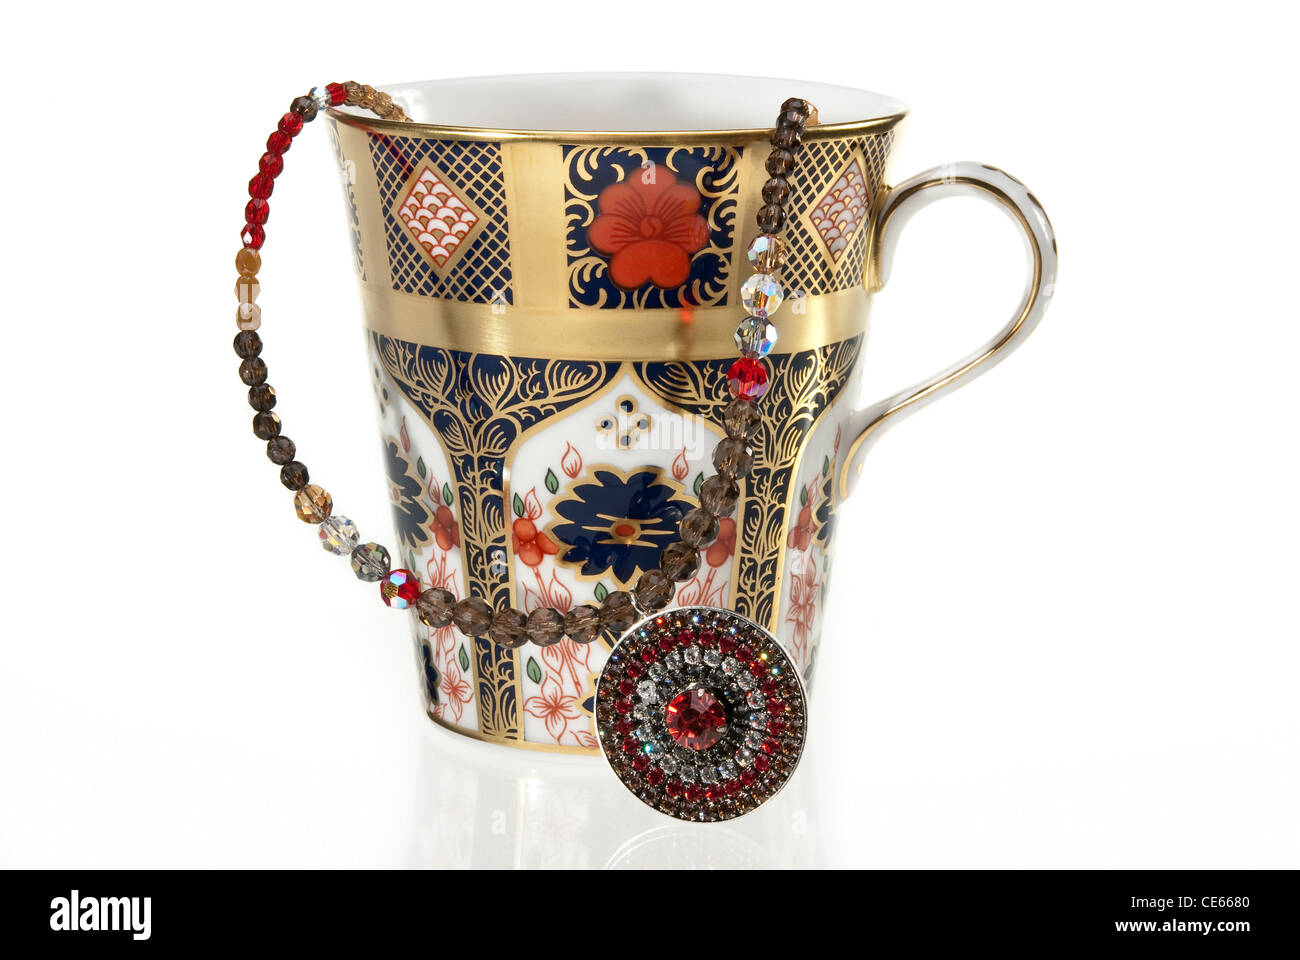 Fine bone china luxurious tea cup with jewellery over white background - Stock Image